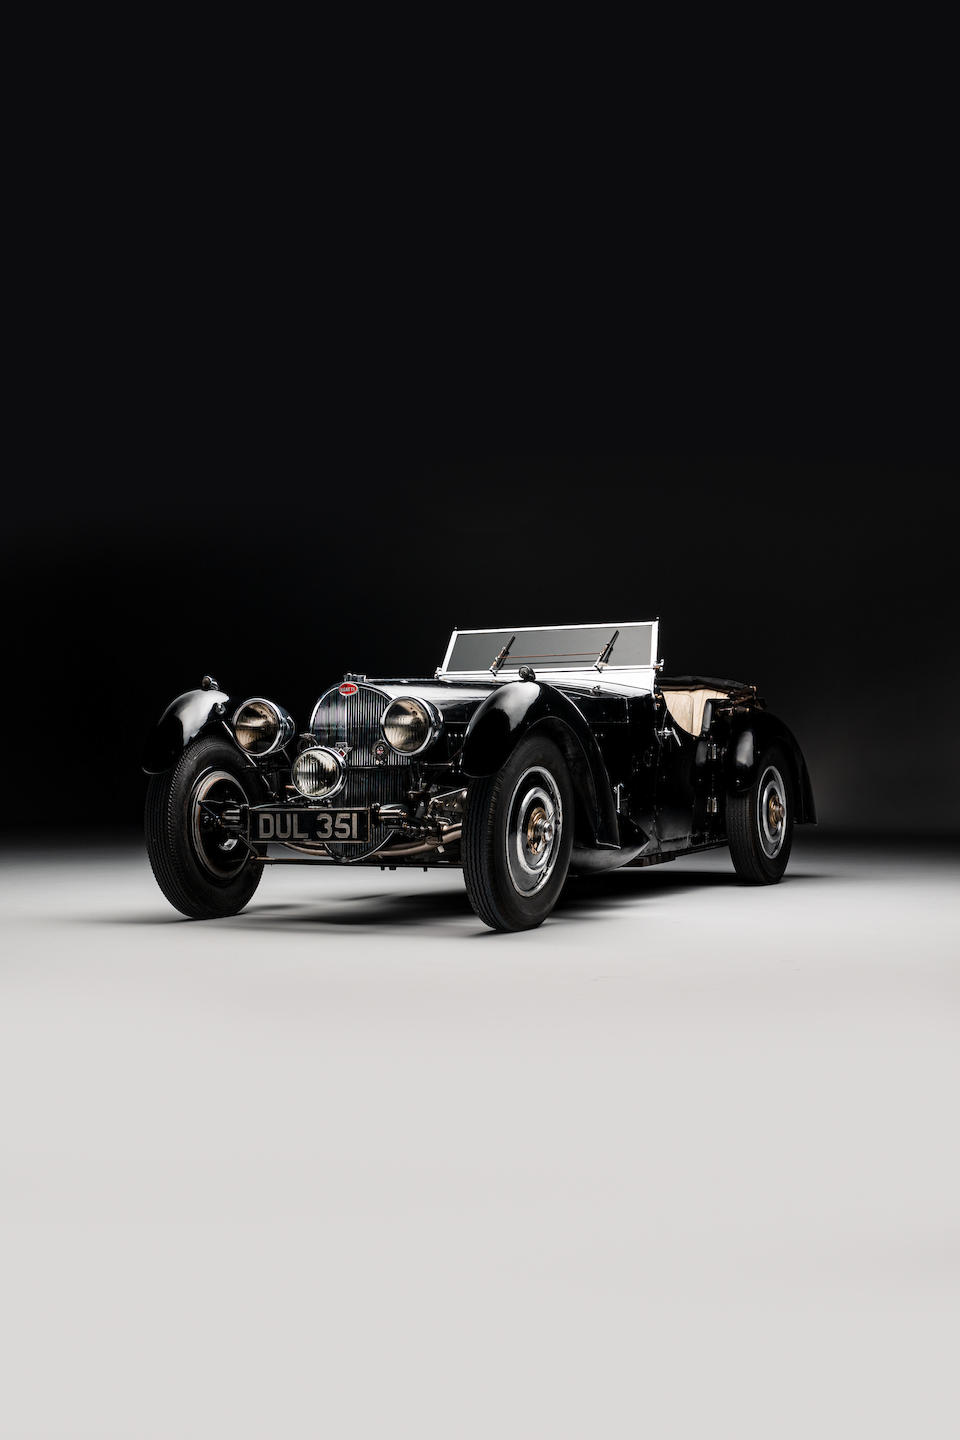 Offered direct from 51 years in a single ownership, the ex-Sir Robert Ropner/Rodney 'Connaught' Clarke,1937 Bugatti Type 57 Surbaisse 3.3-Litre Four-Seat Sports Grand Routier 'Dulcie'  Chassis no. 57503